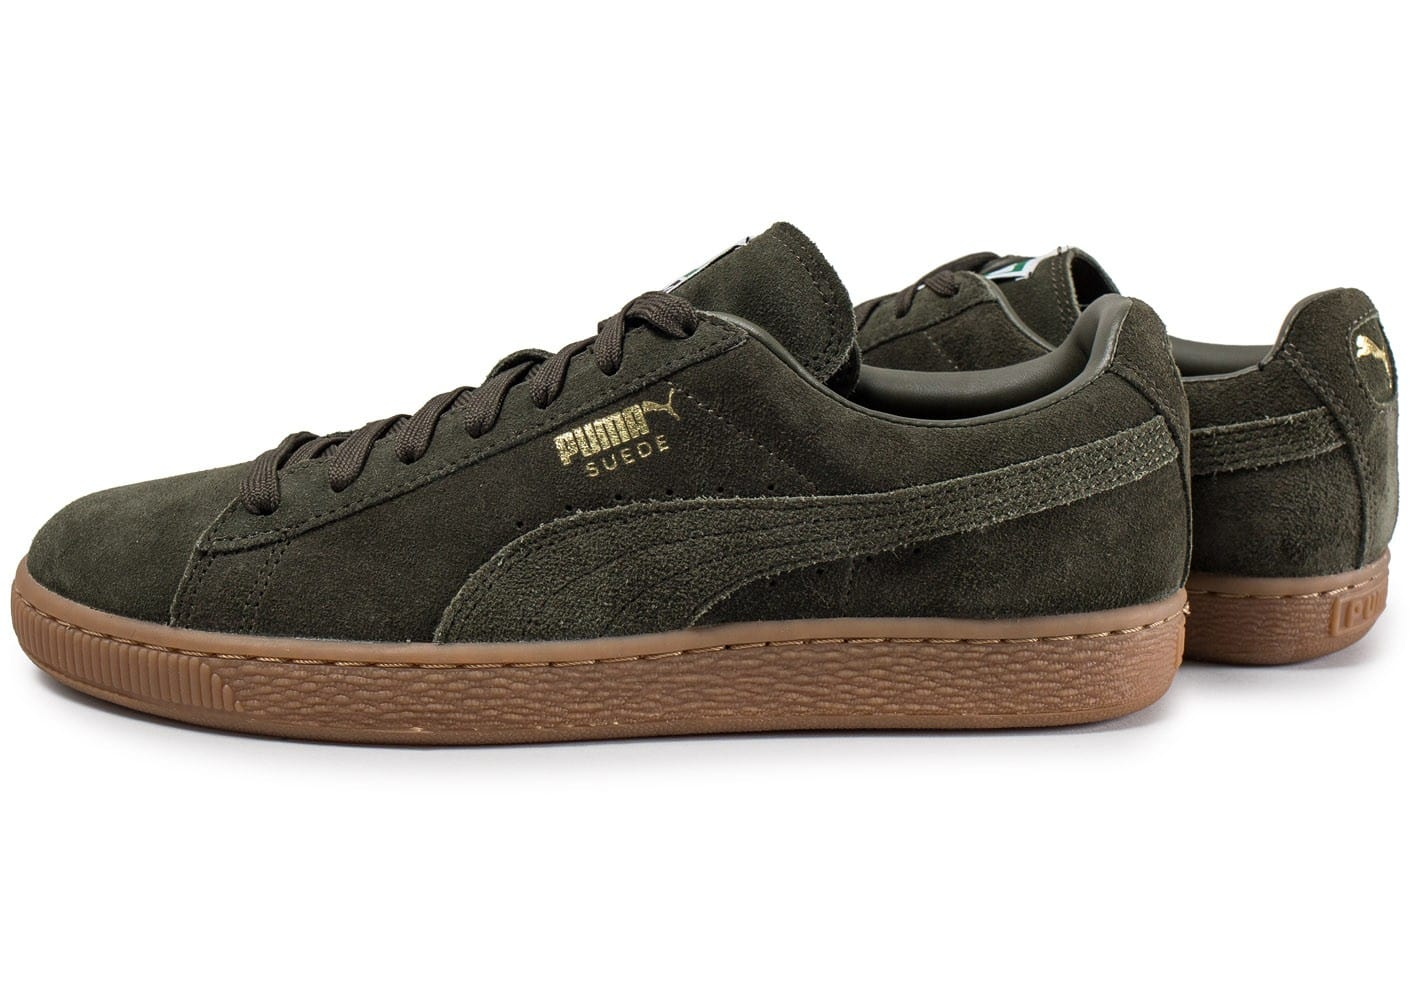 puma suede classic gum verte chaussures baskets homme chausport. Black Bedroom Furniture Sets. Home Design Ideas